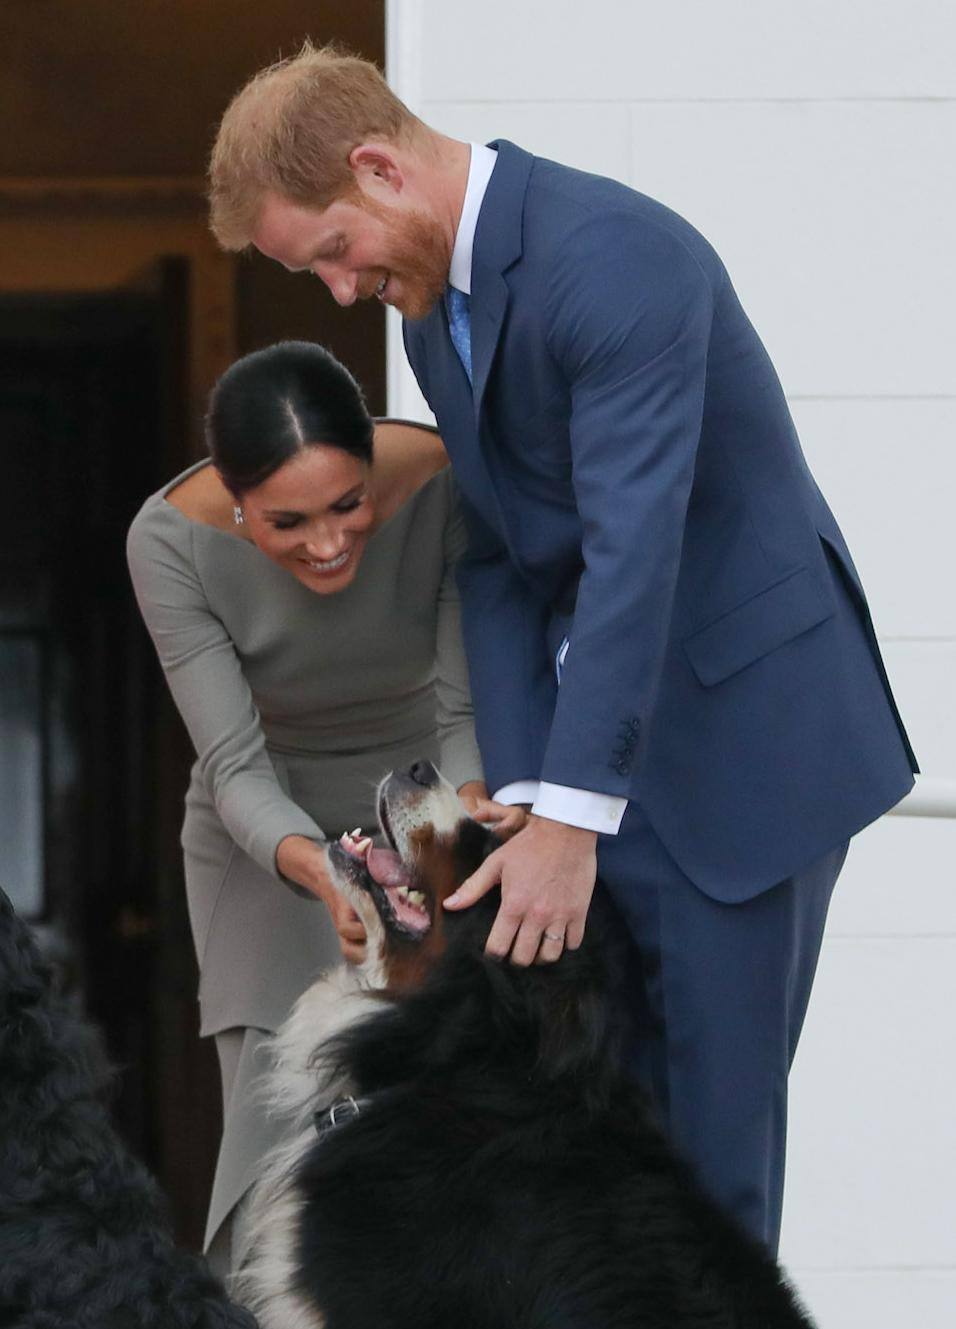 Meghan is a well-known dog-lover but she and Harry have kept details of their own pet firmly under wraps (Picture: MAXWELLS/AFP/Getty Images)